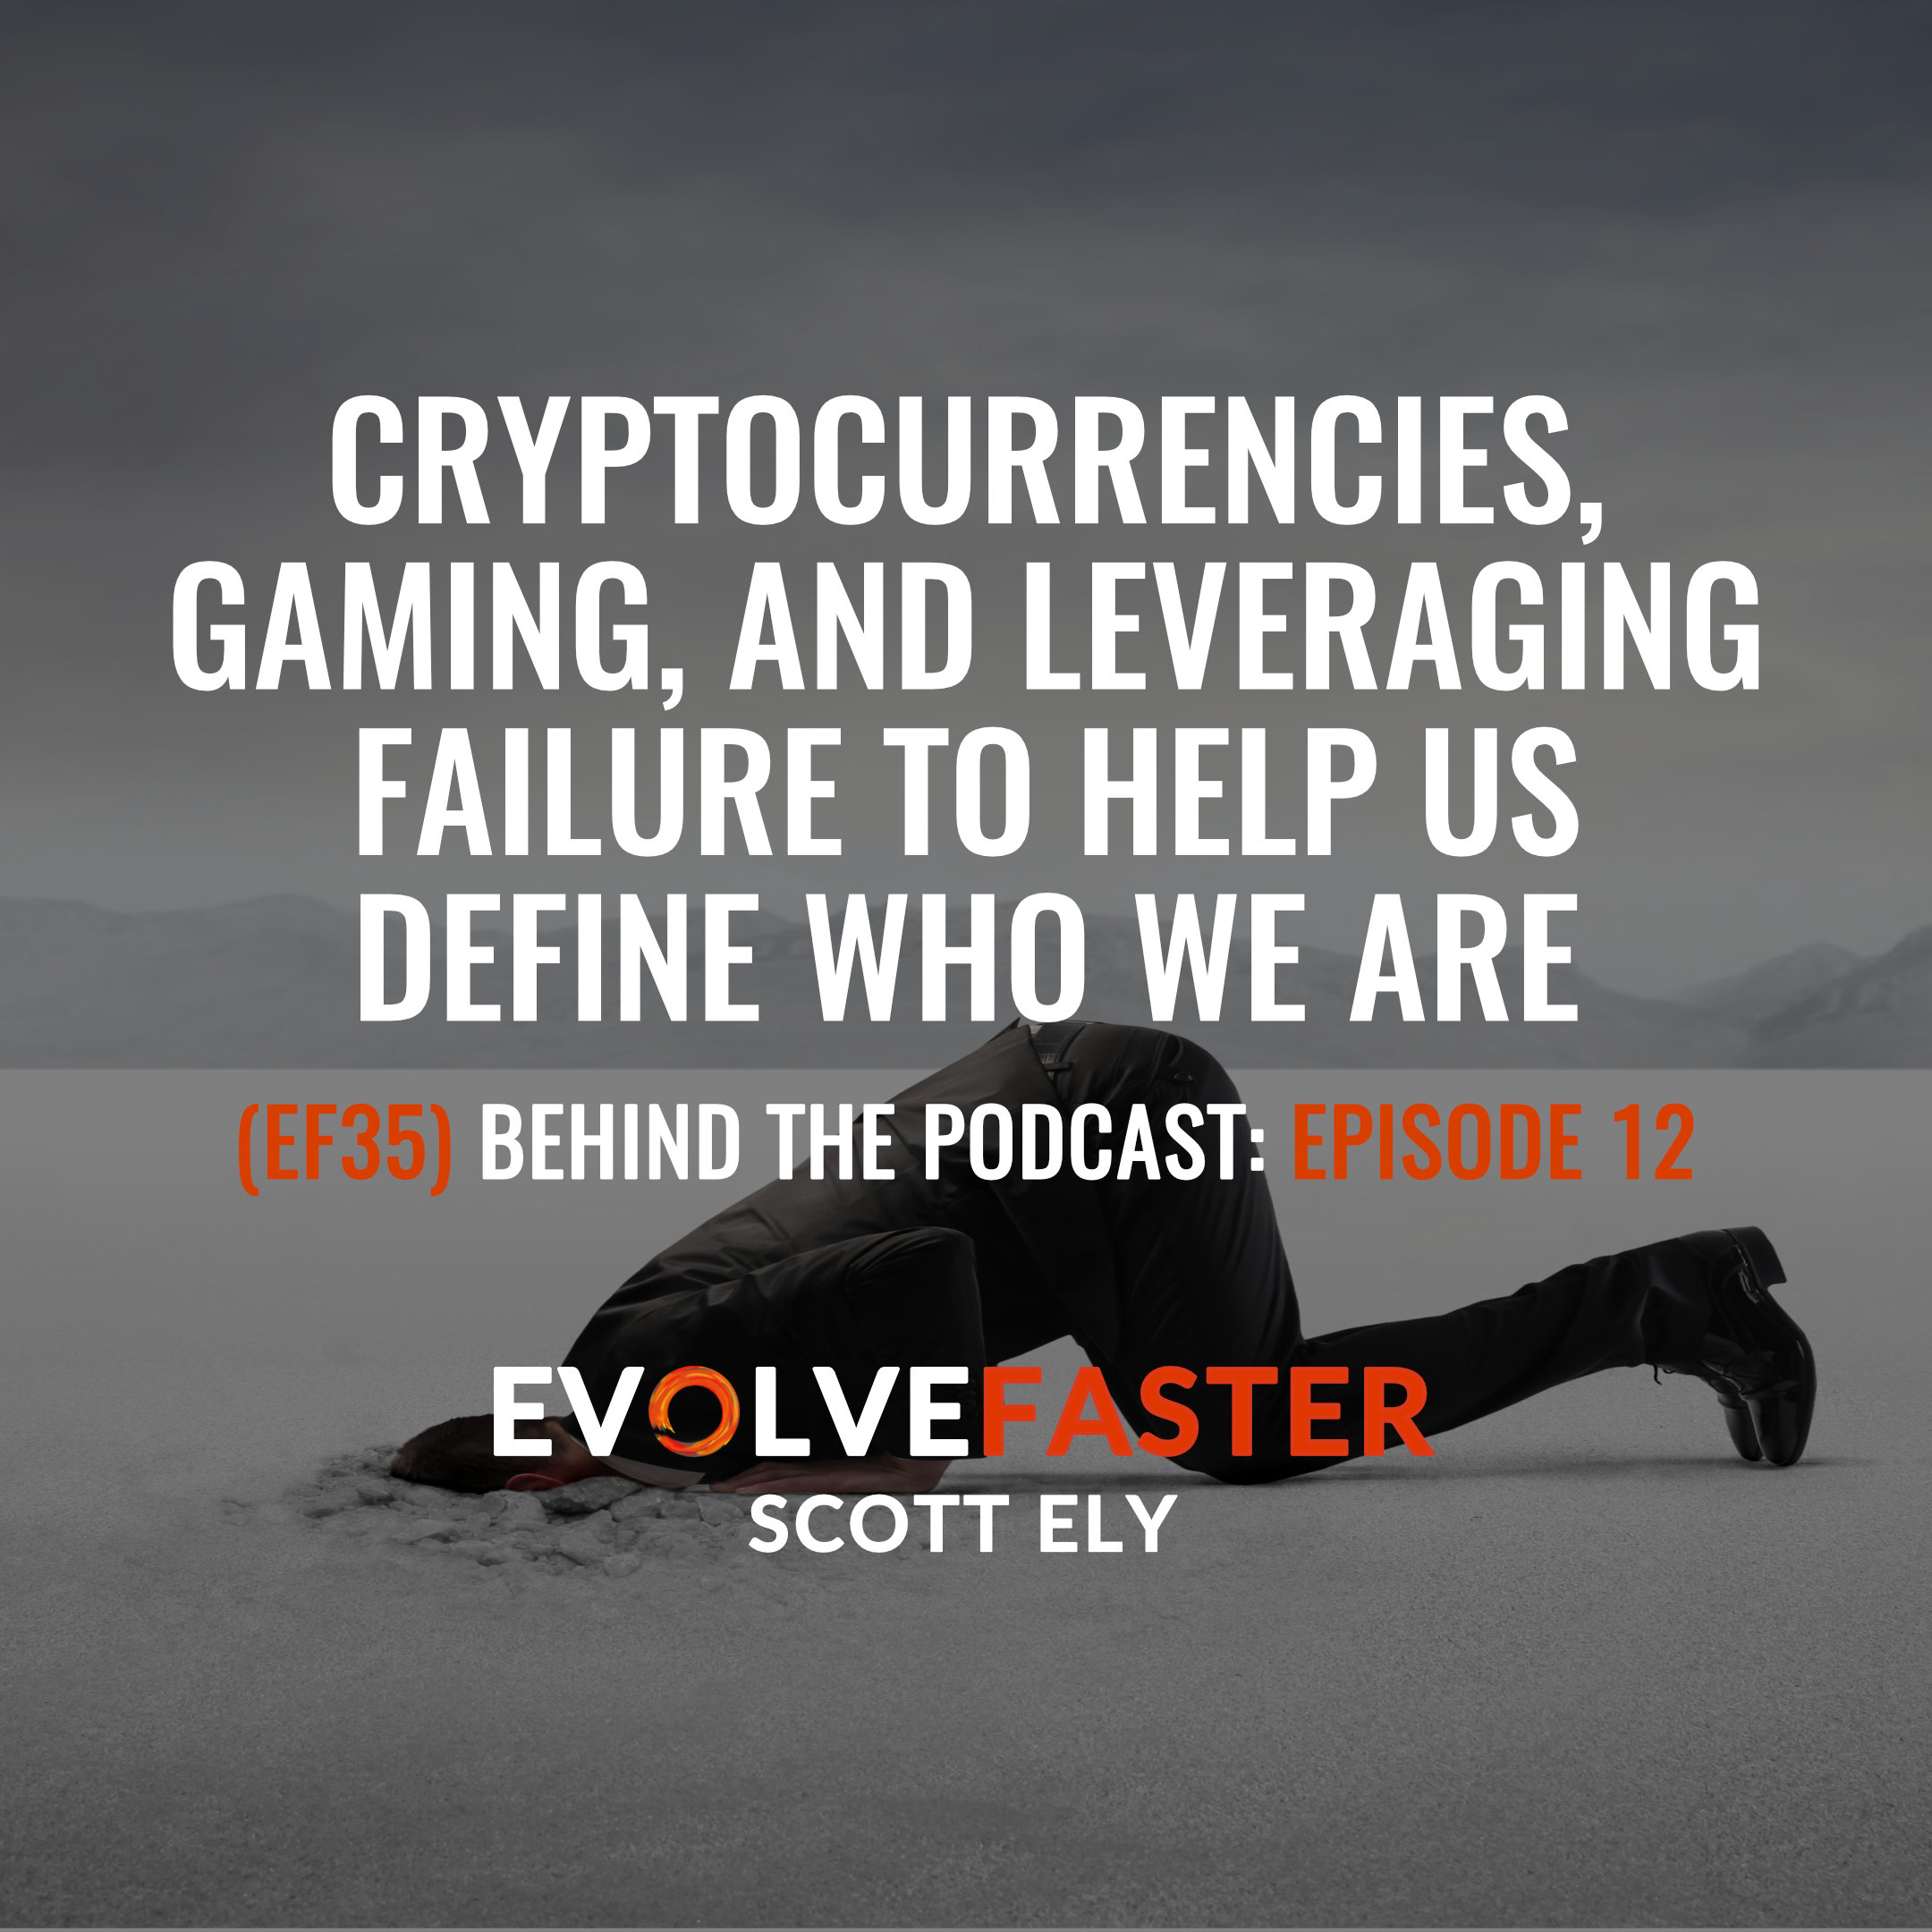 (EF35) BTP-EF12: Cryptocurrencies Gaming and Leveraging Failure to Help Us Define Who We Are Behind the Podcast of Episode EF12